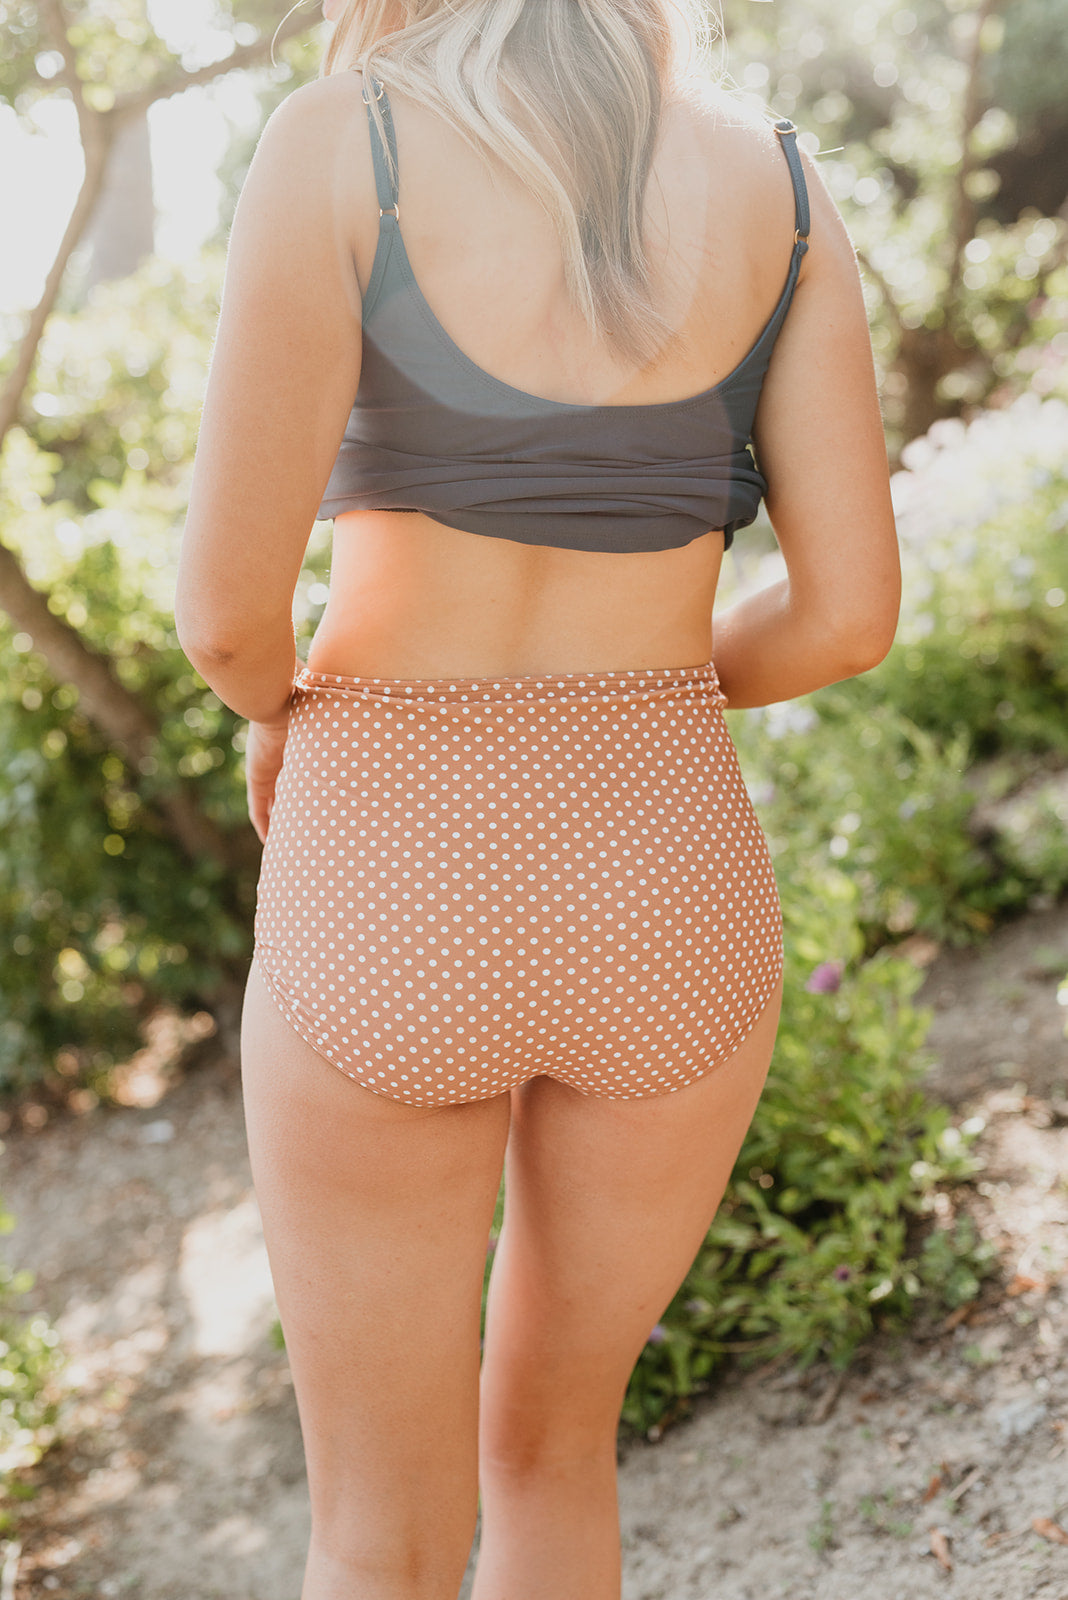 PINK DESERT HIGH WAIST SWIM BOTTOM IN MOCHA DOT